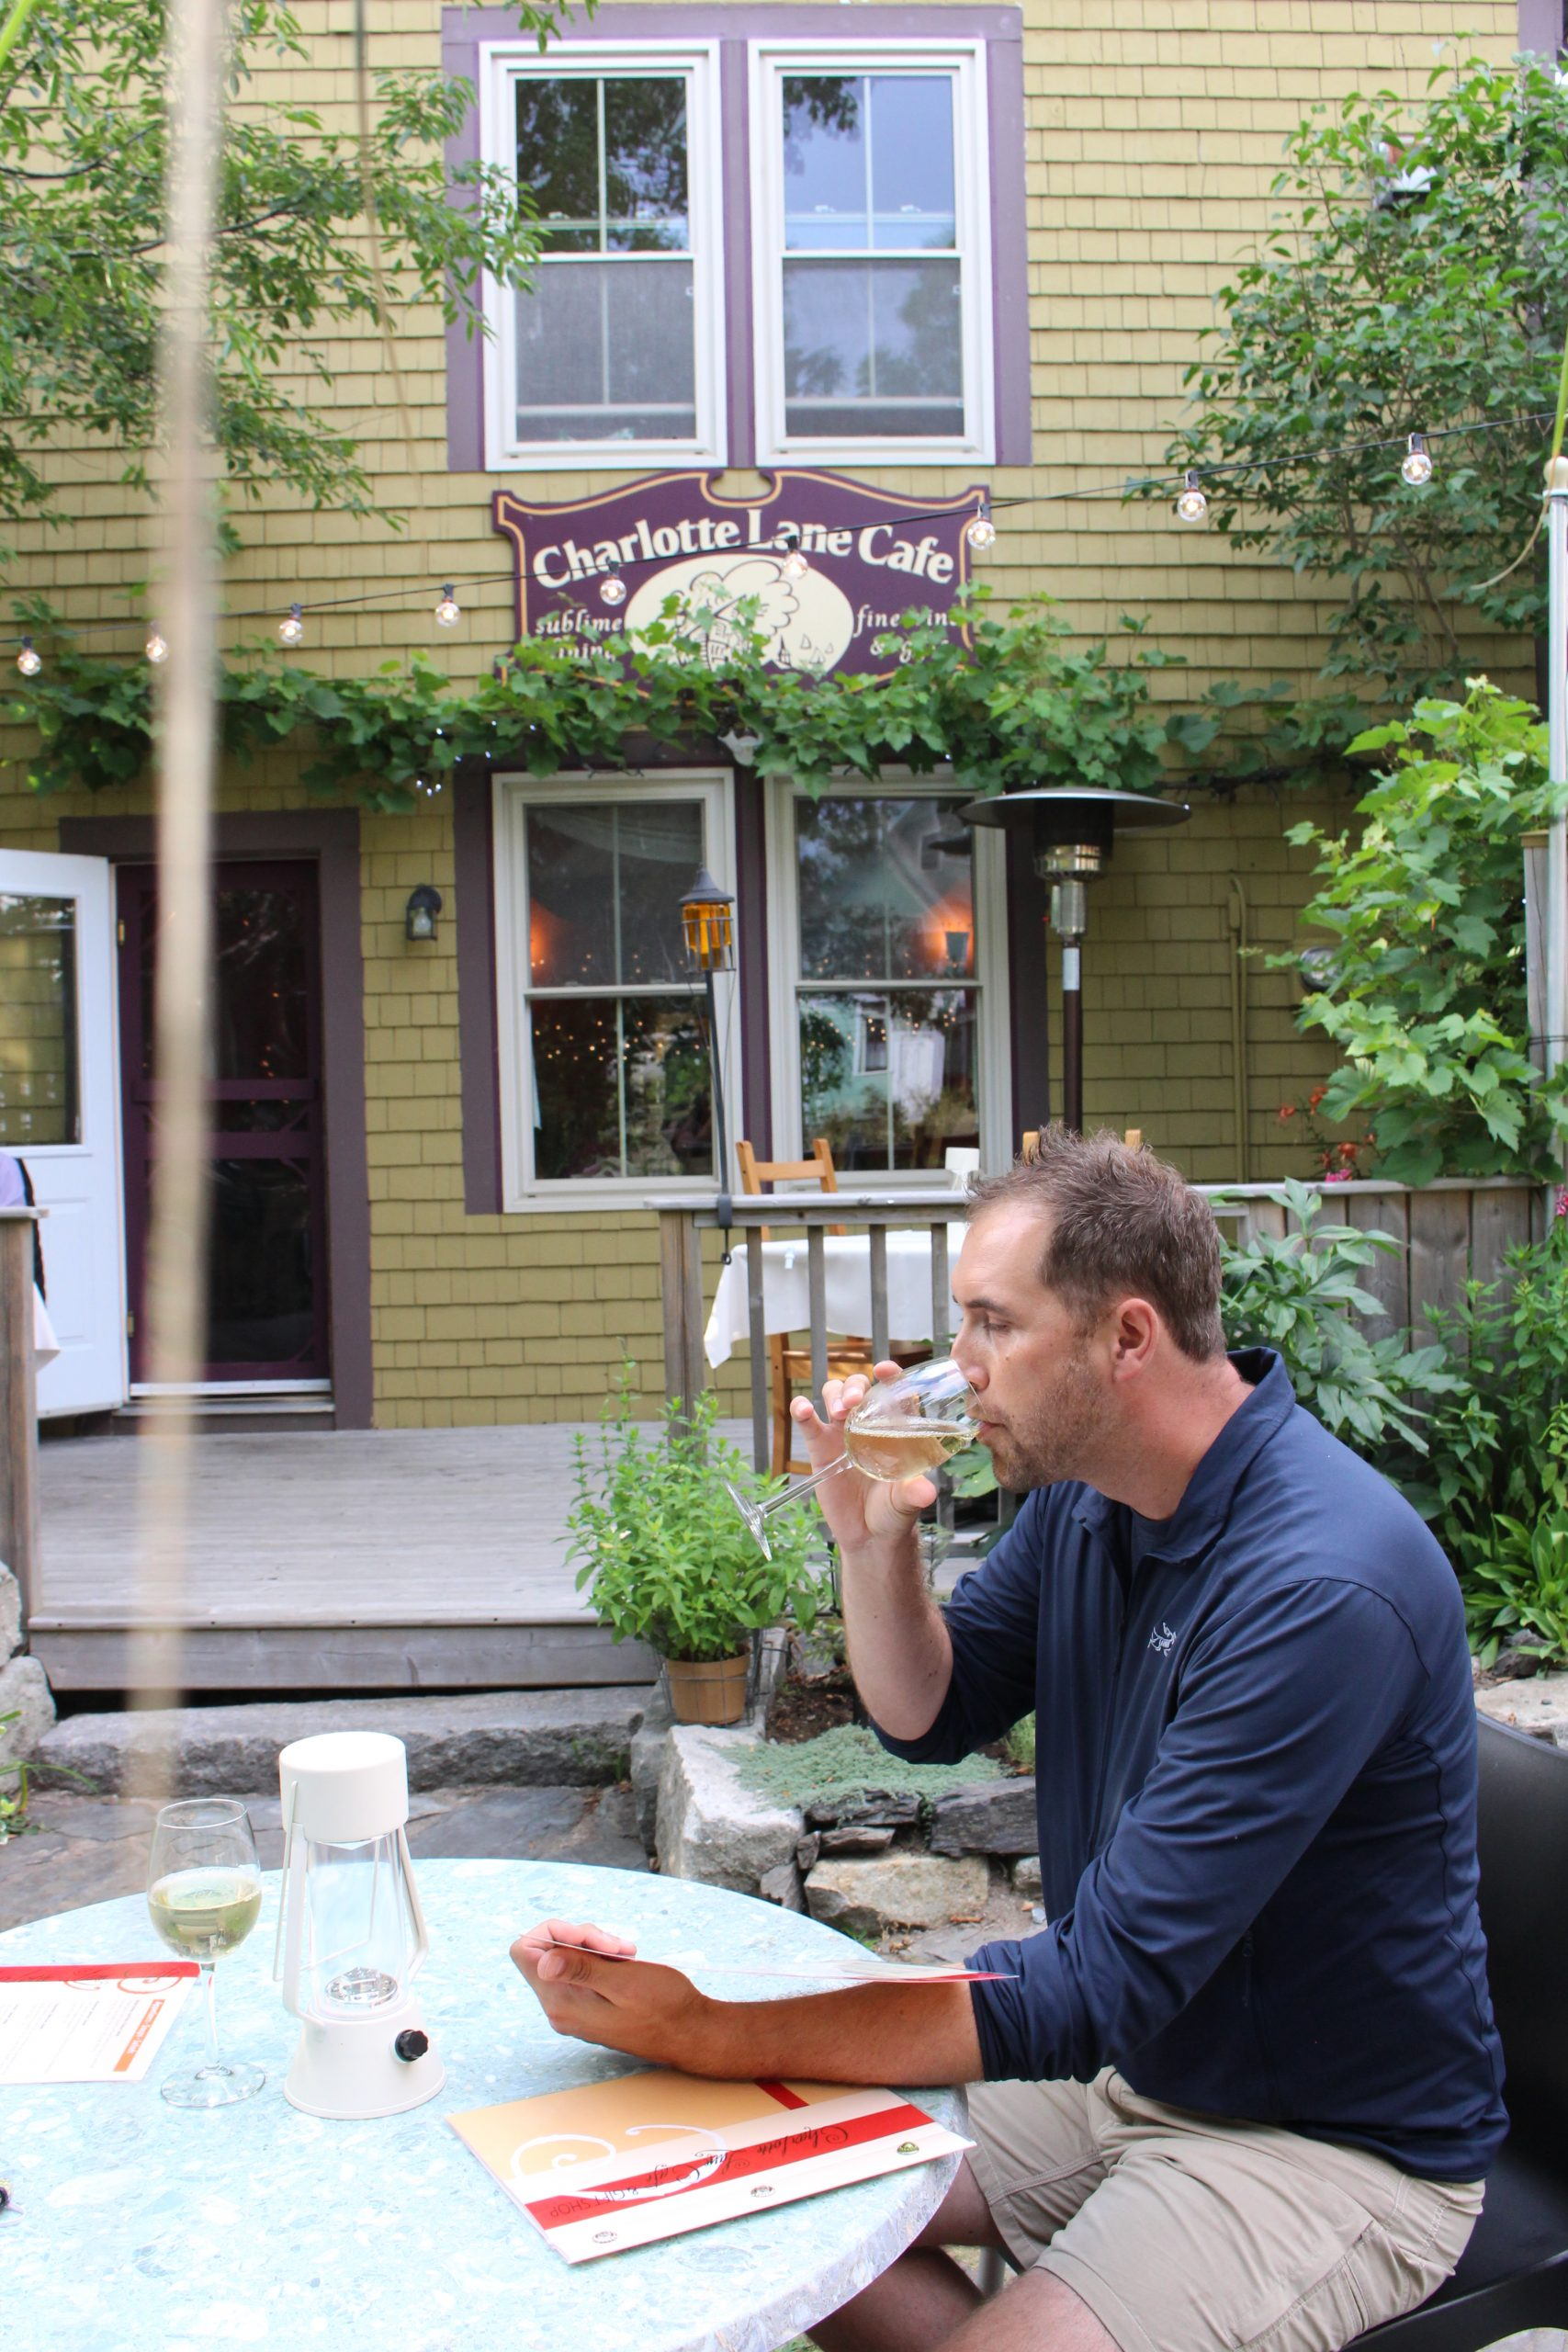 Charlotte Lane Cafe, Shelburne